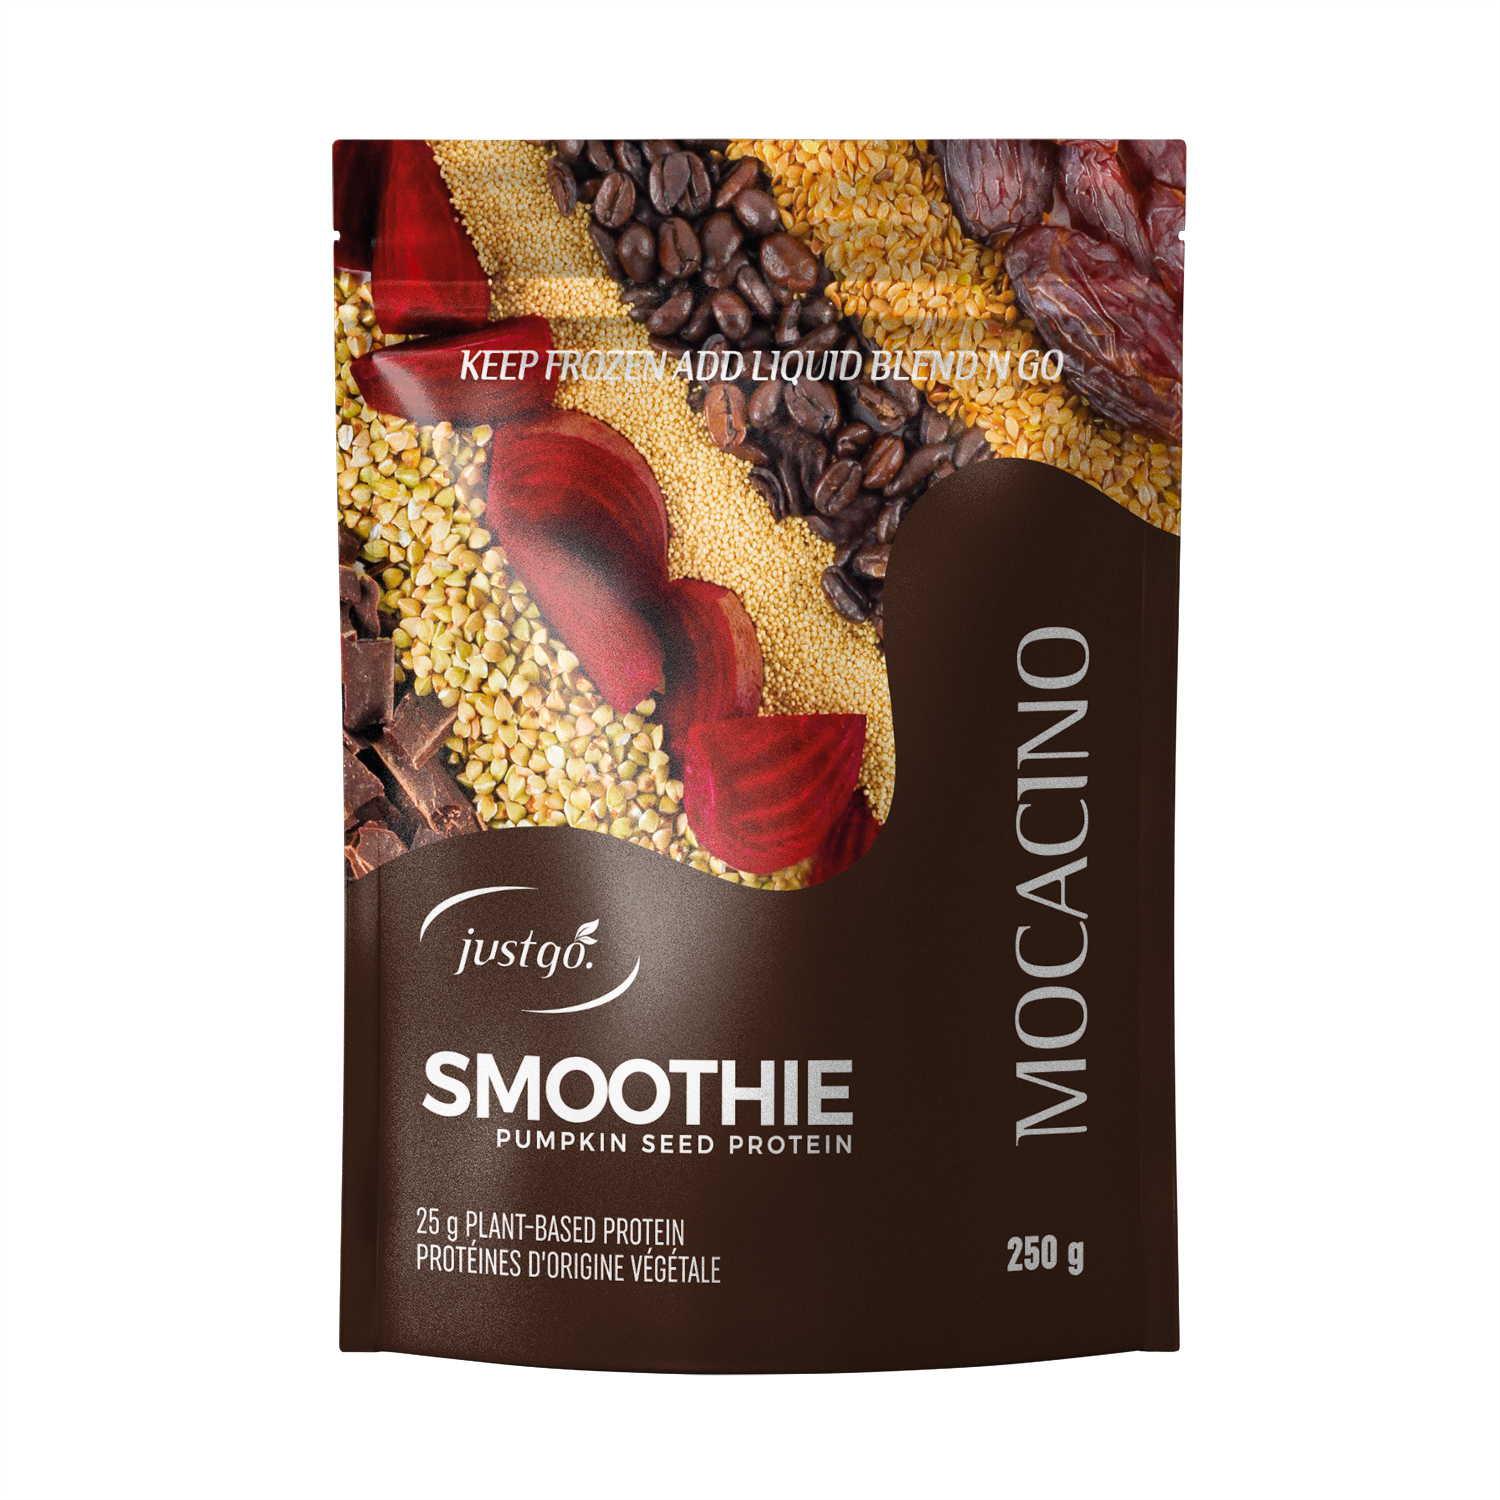 Mocacino Full Pack - Just Go Smoothie